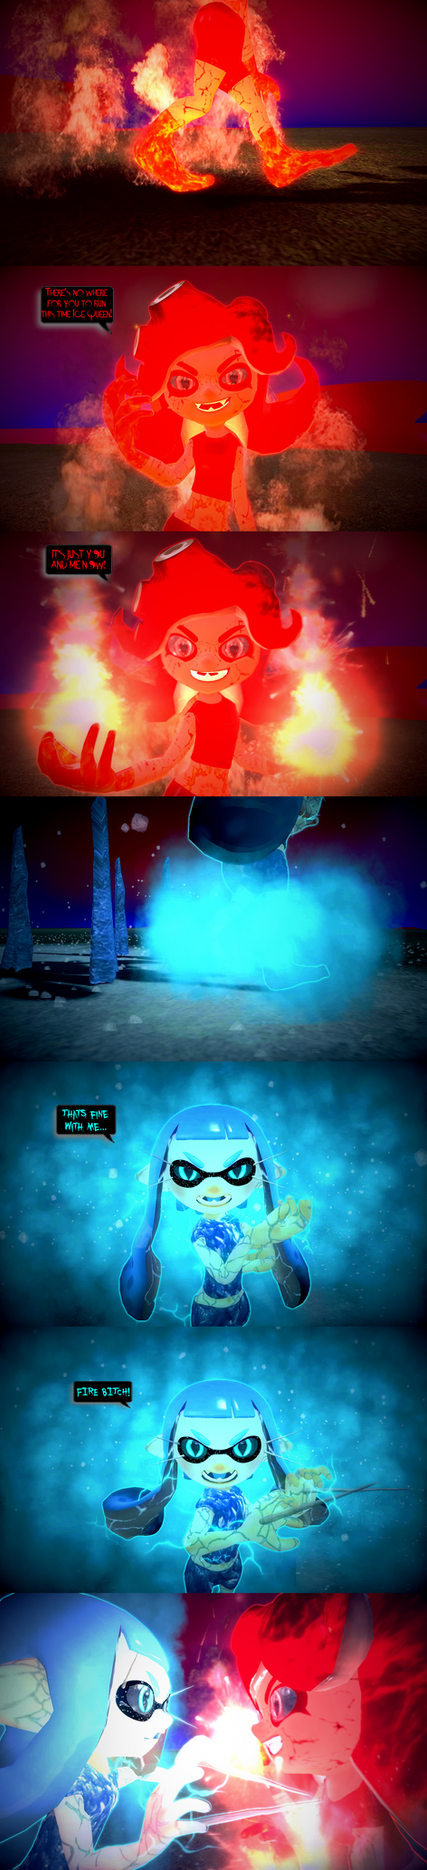 Teaser: Fire and Ice by DarkMario2